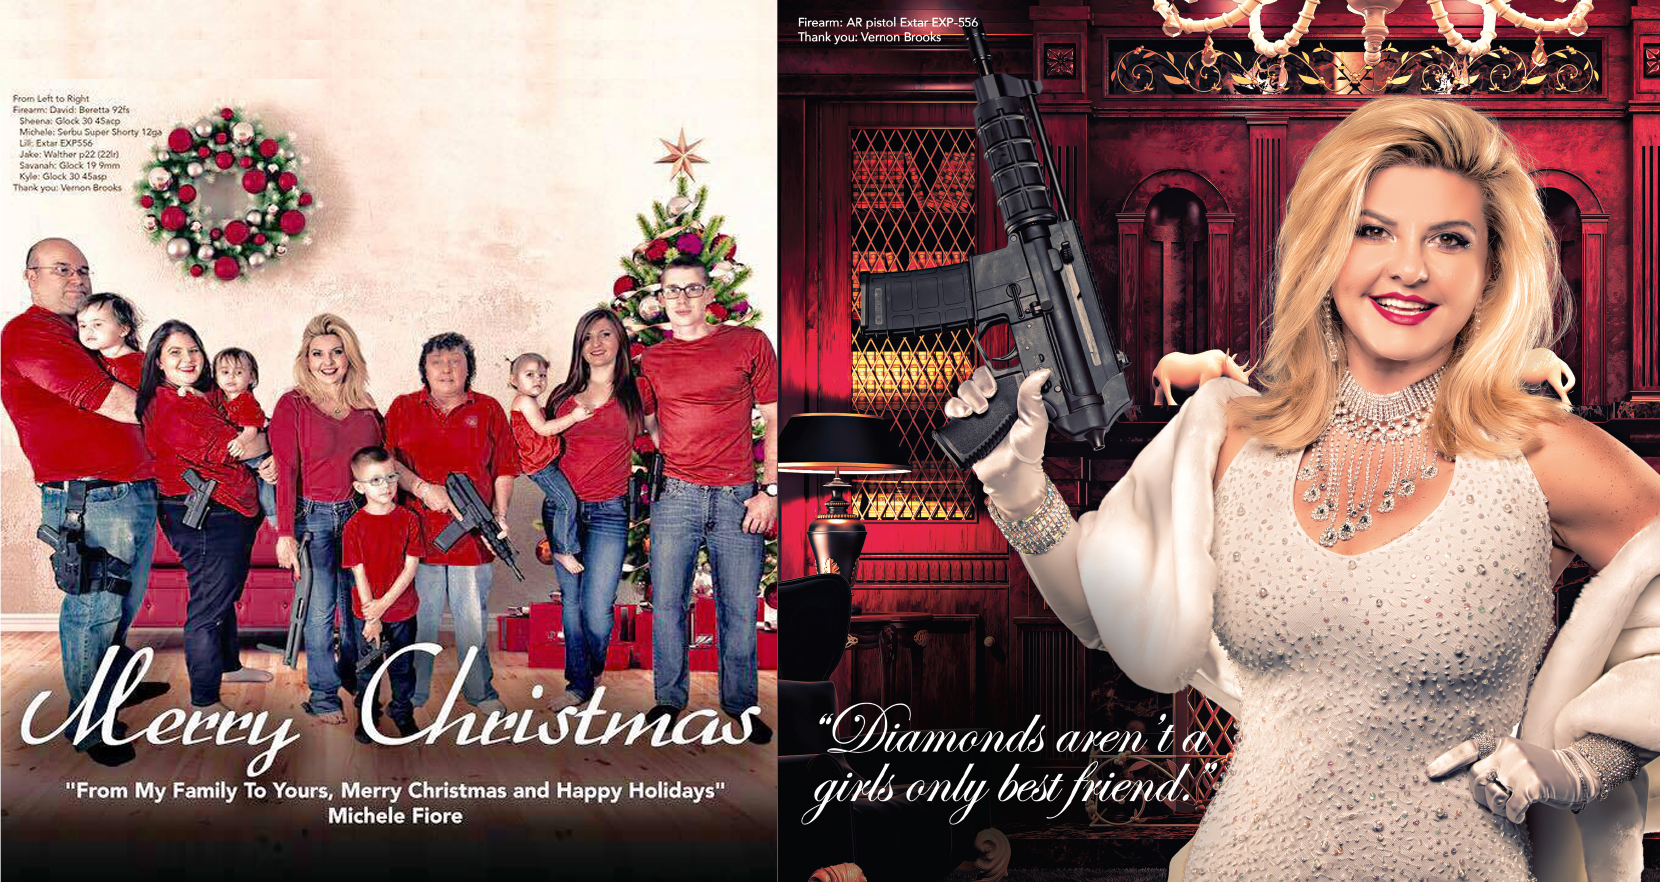 Trigger Happy Holidays – Republican Lawmaker Posts Christmas Card Featuring Fully Armed Family